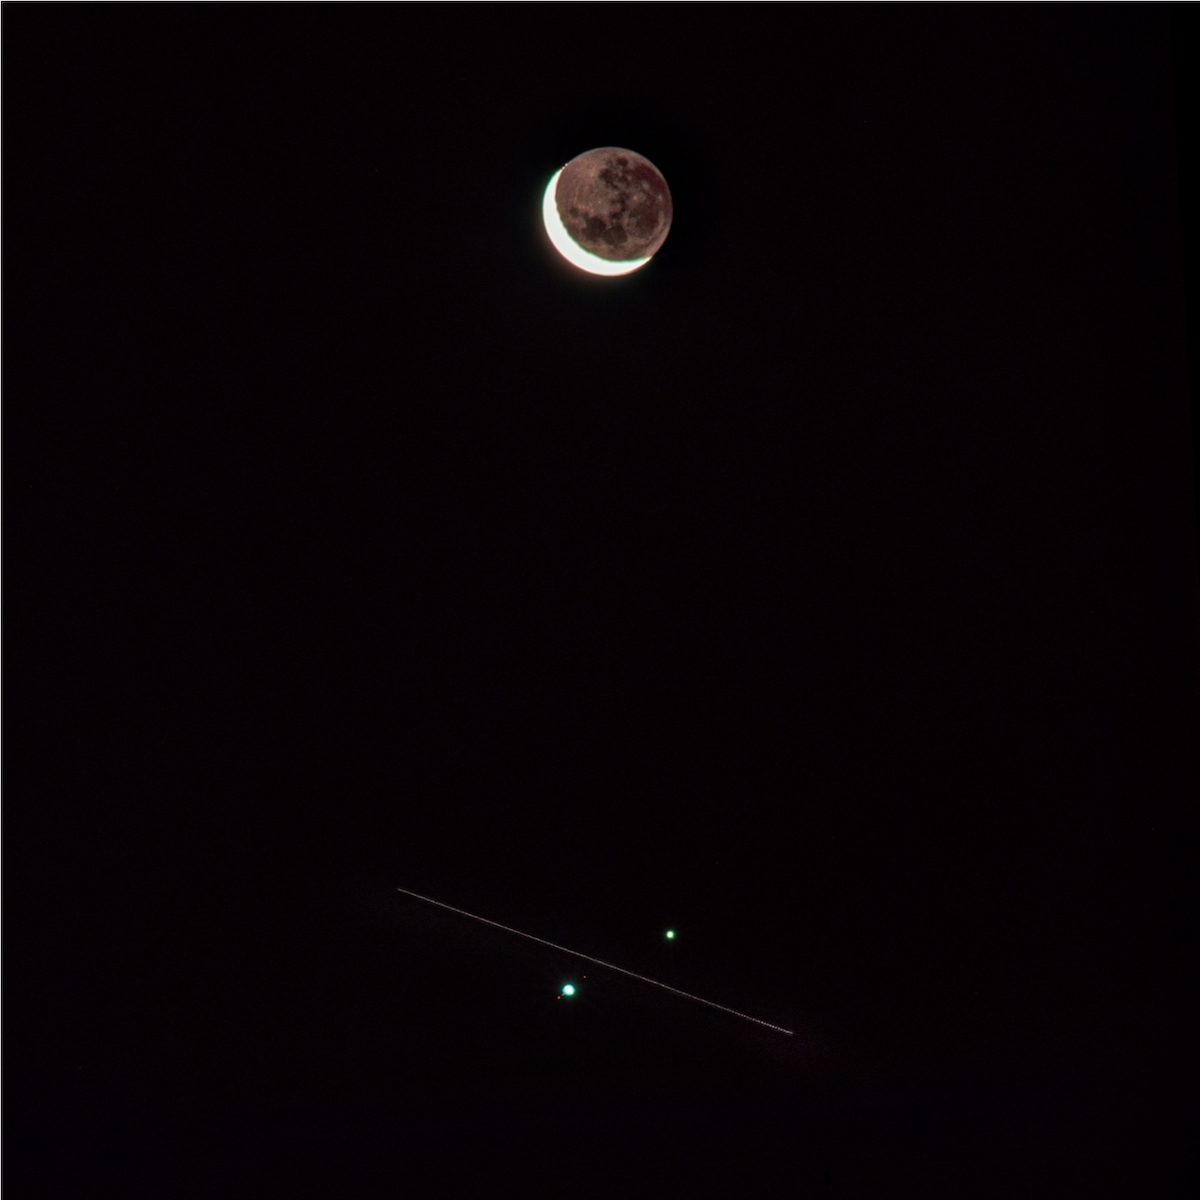 ISS Transit Through Great Conjunction Photography by Jason de Freitas